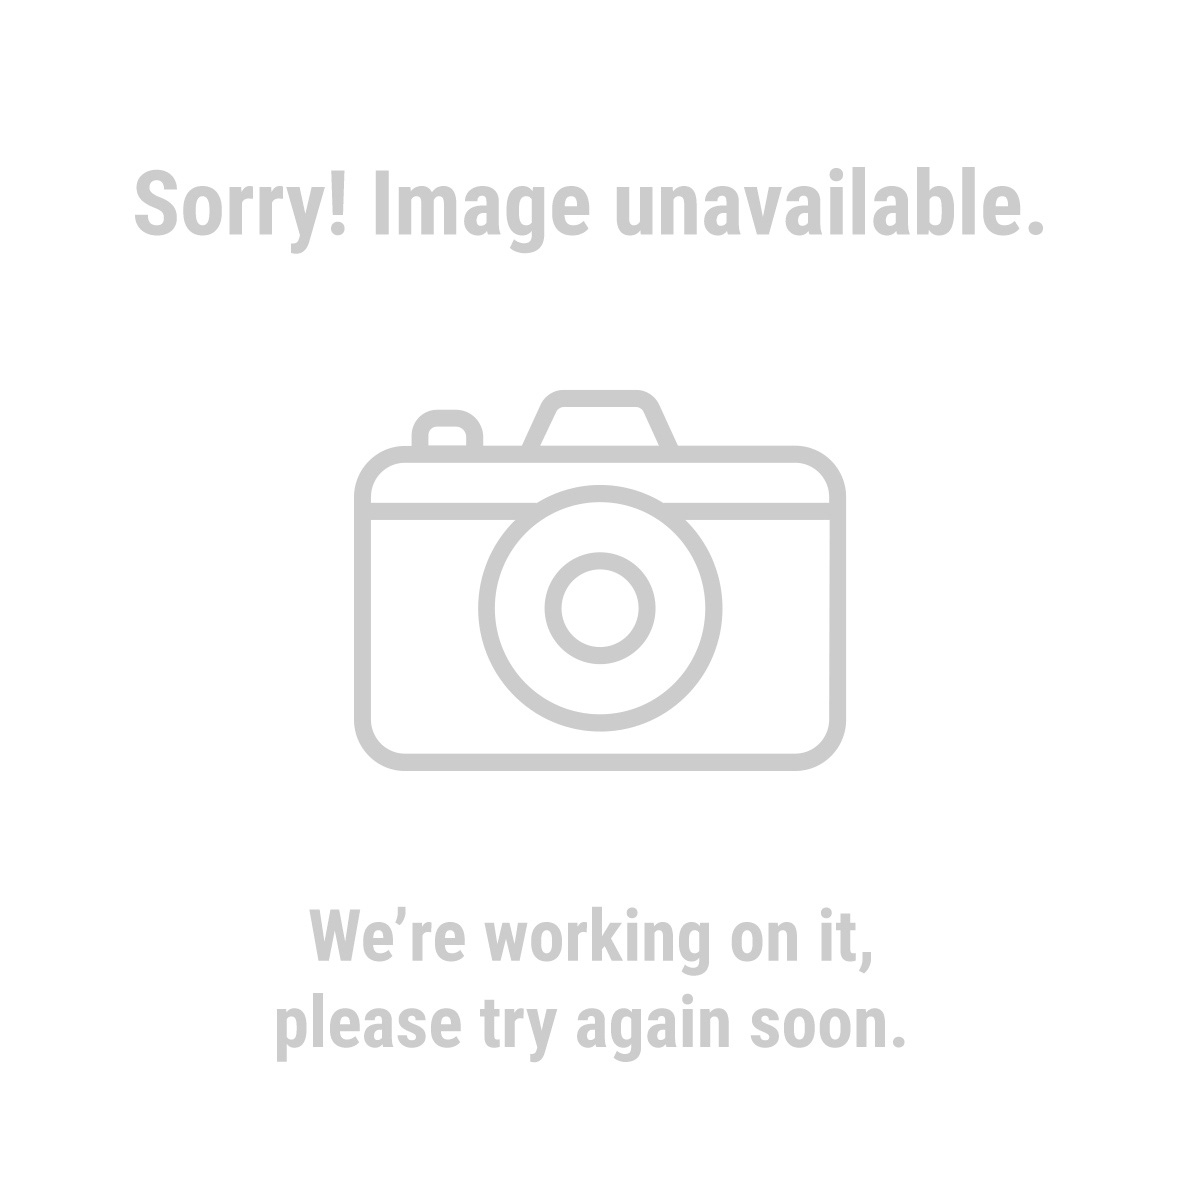 Detailer's Choice 68446 Deluxe Wheel Detail Brush